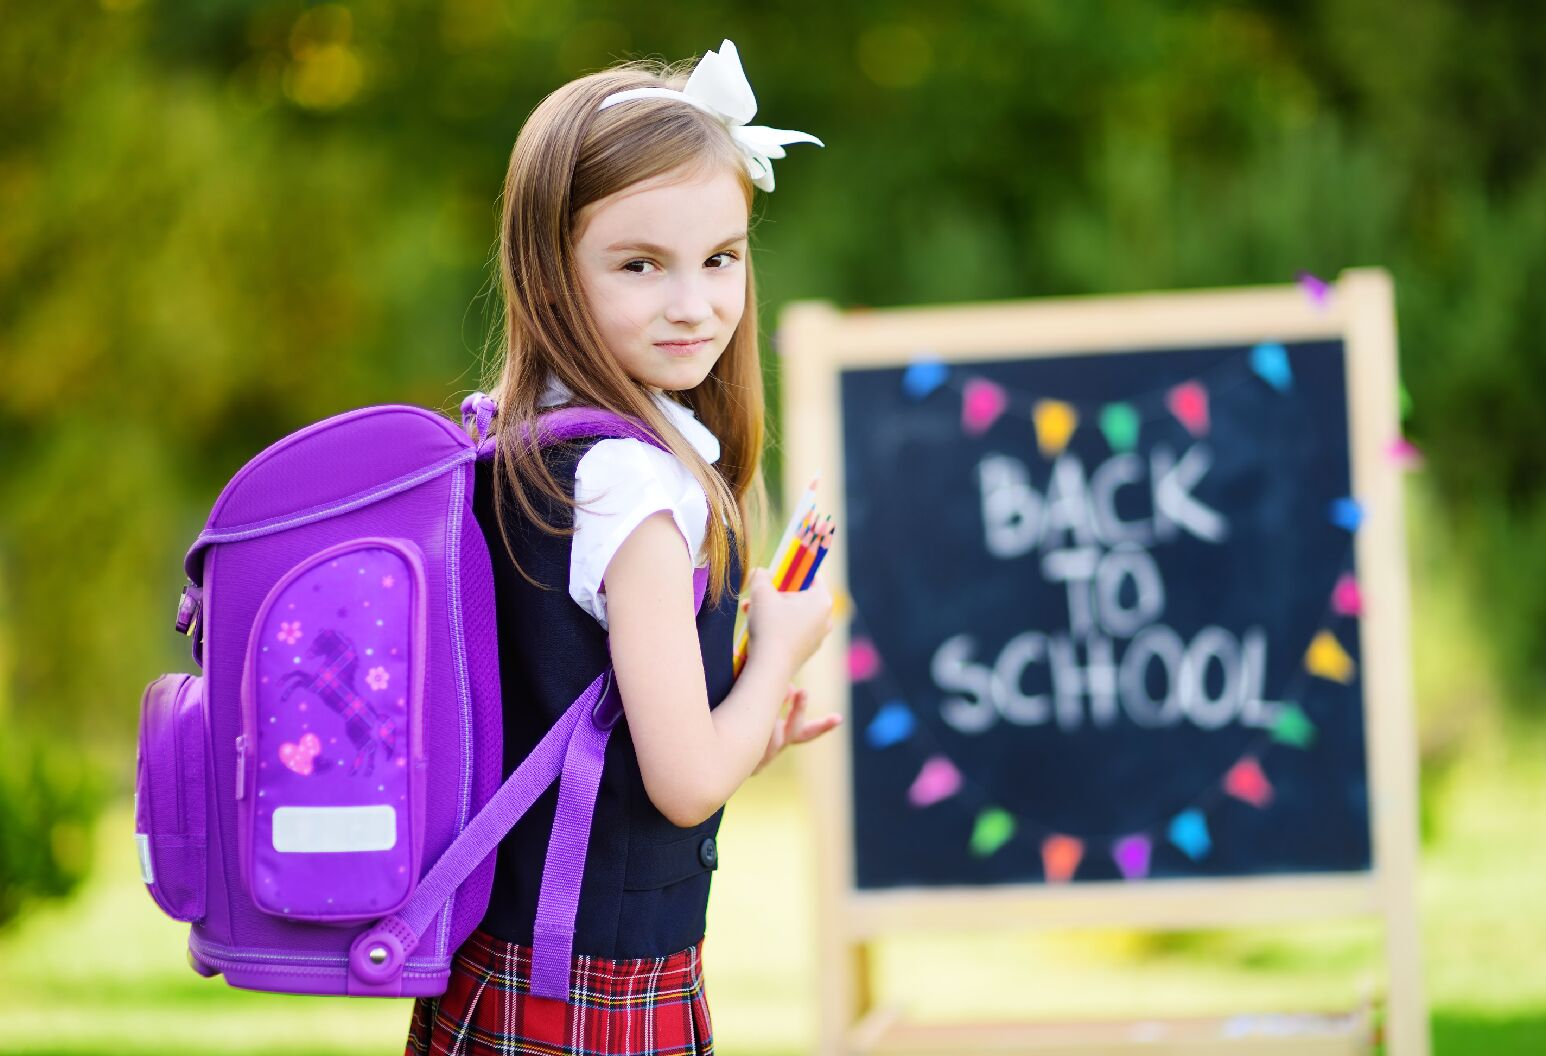 Young girl with purple backpack holding multi-colored pencils